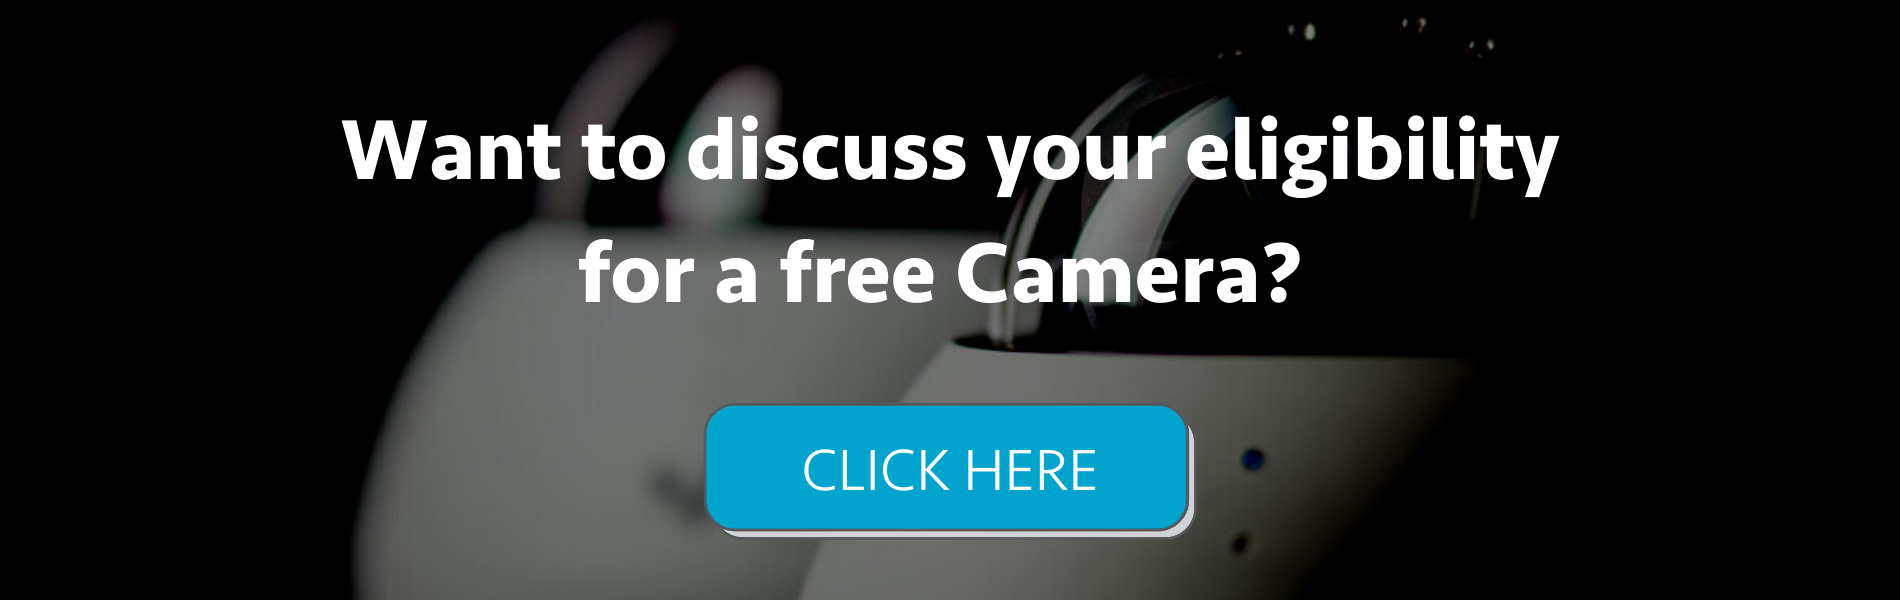 Free cameras for schools, colleges and universities